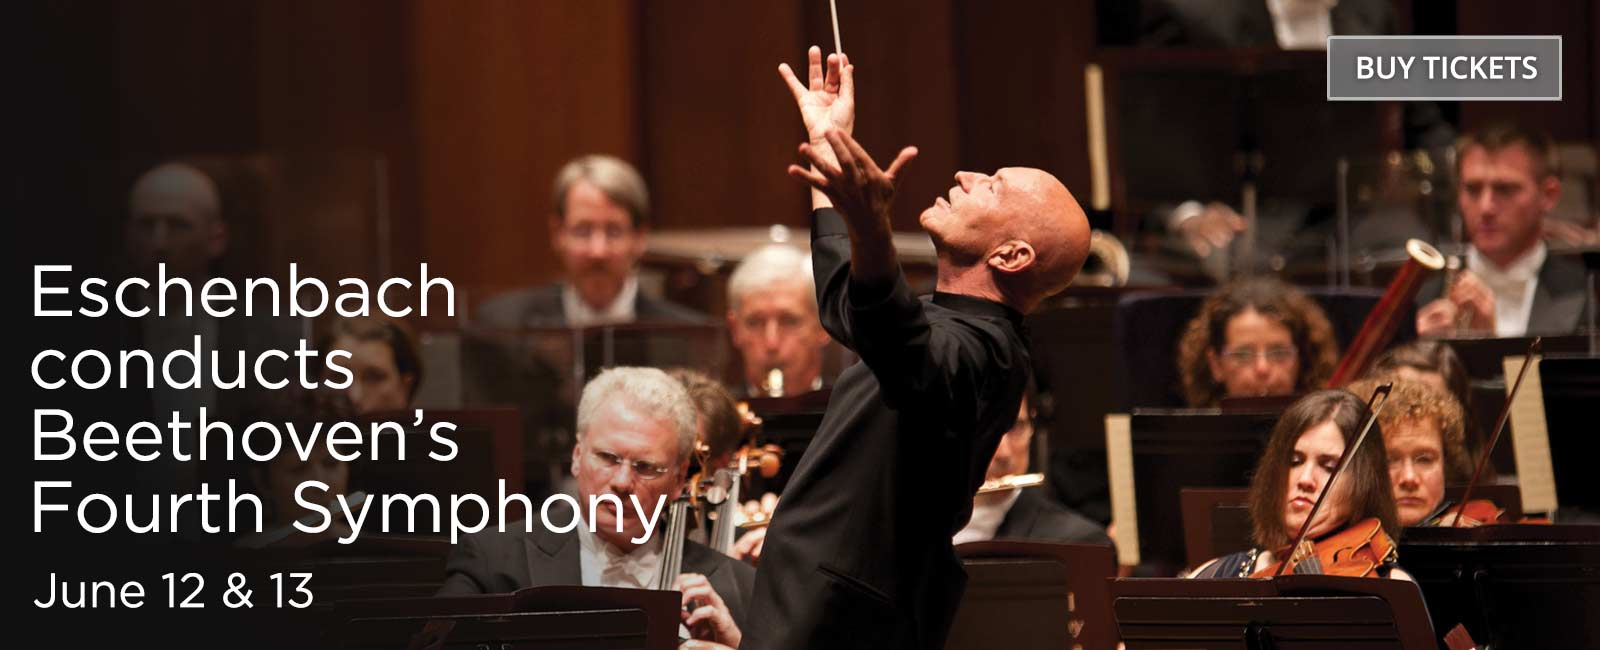 Eschenbach conducts Beethoven's Fourth